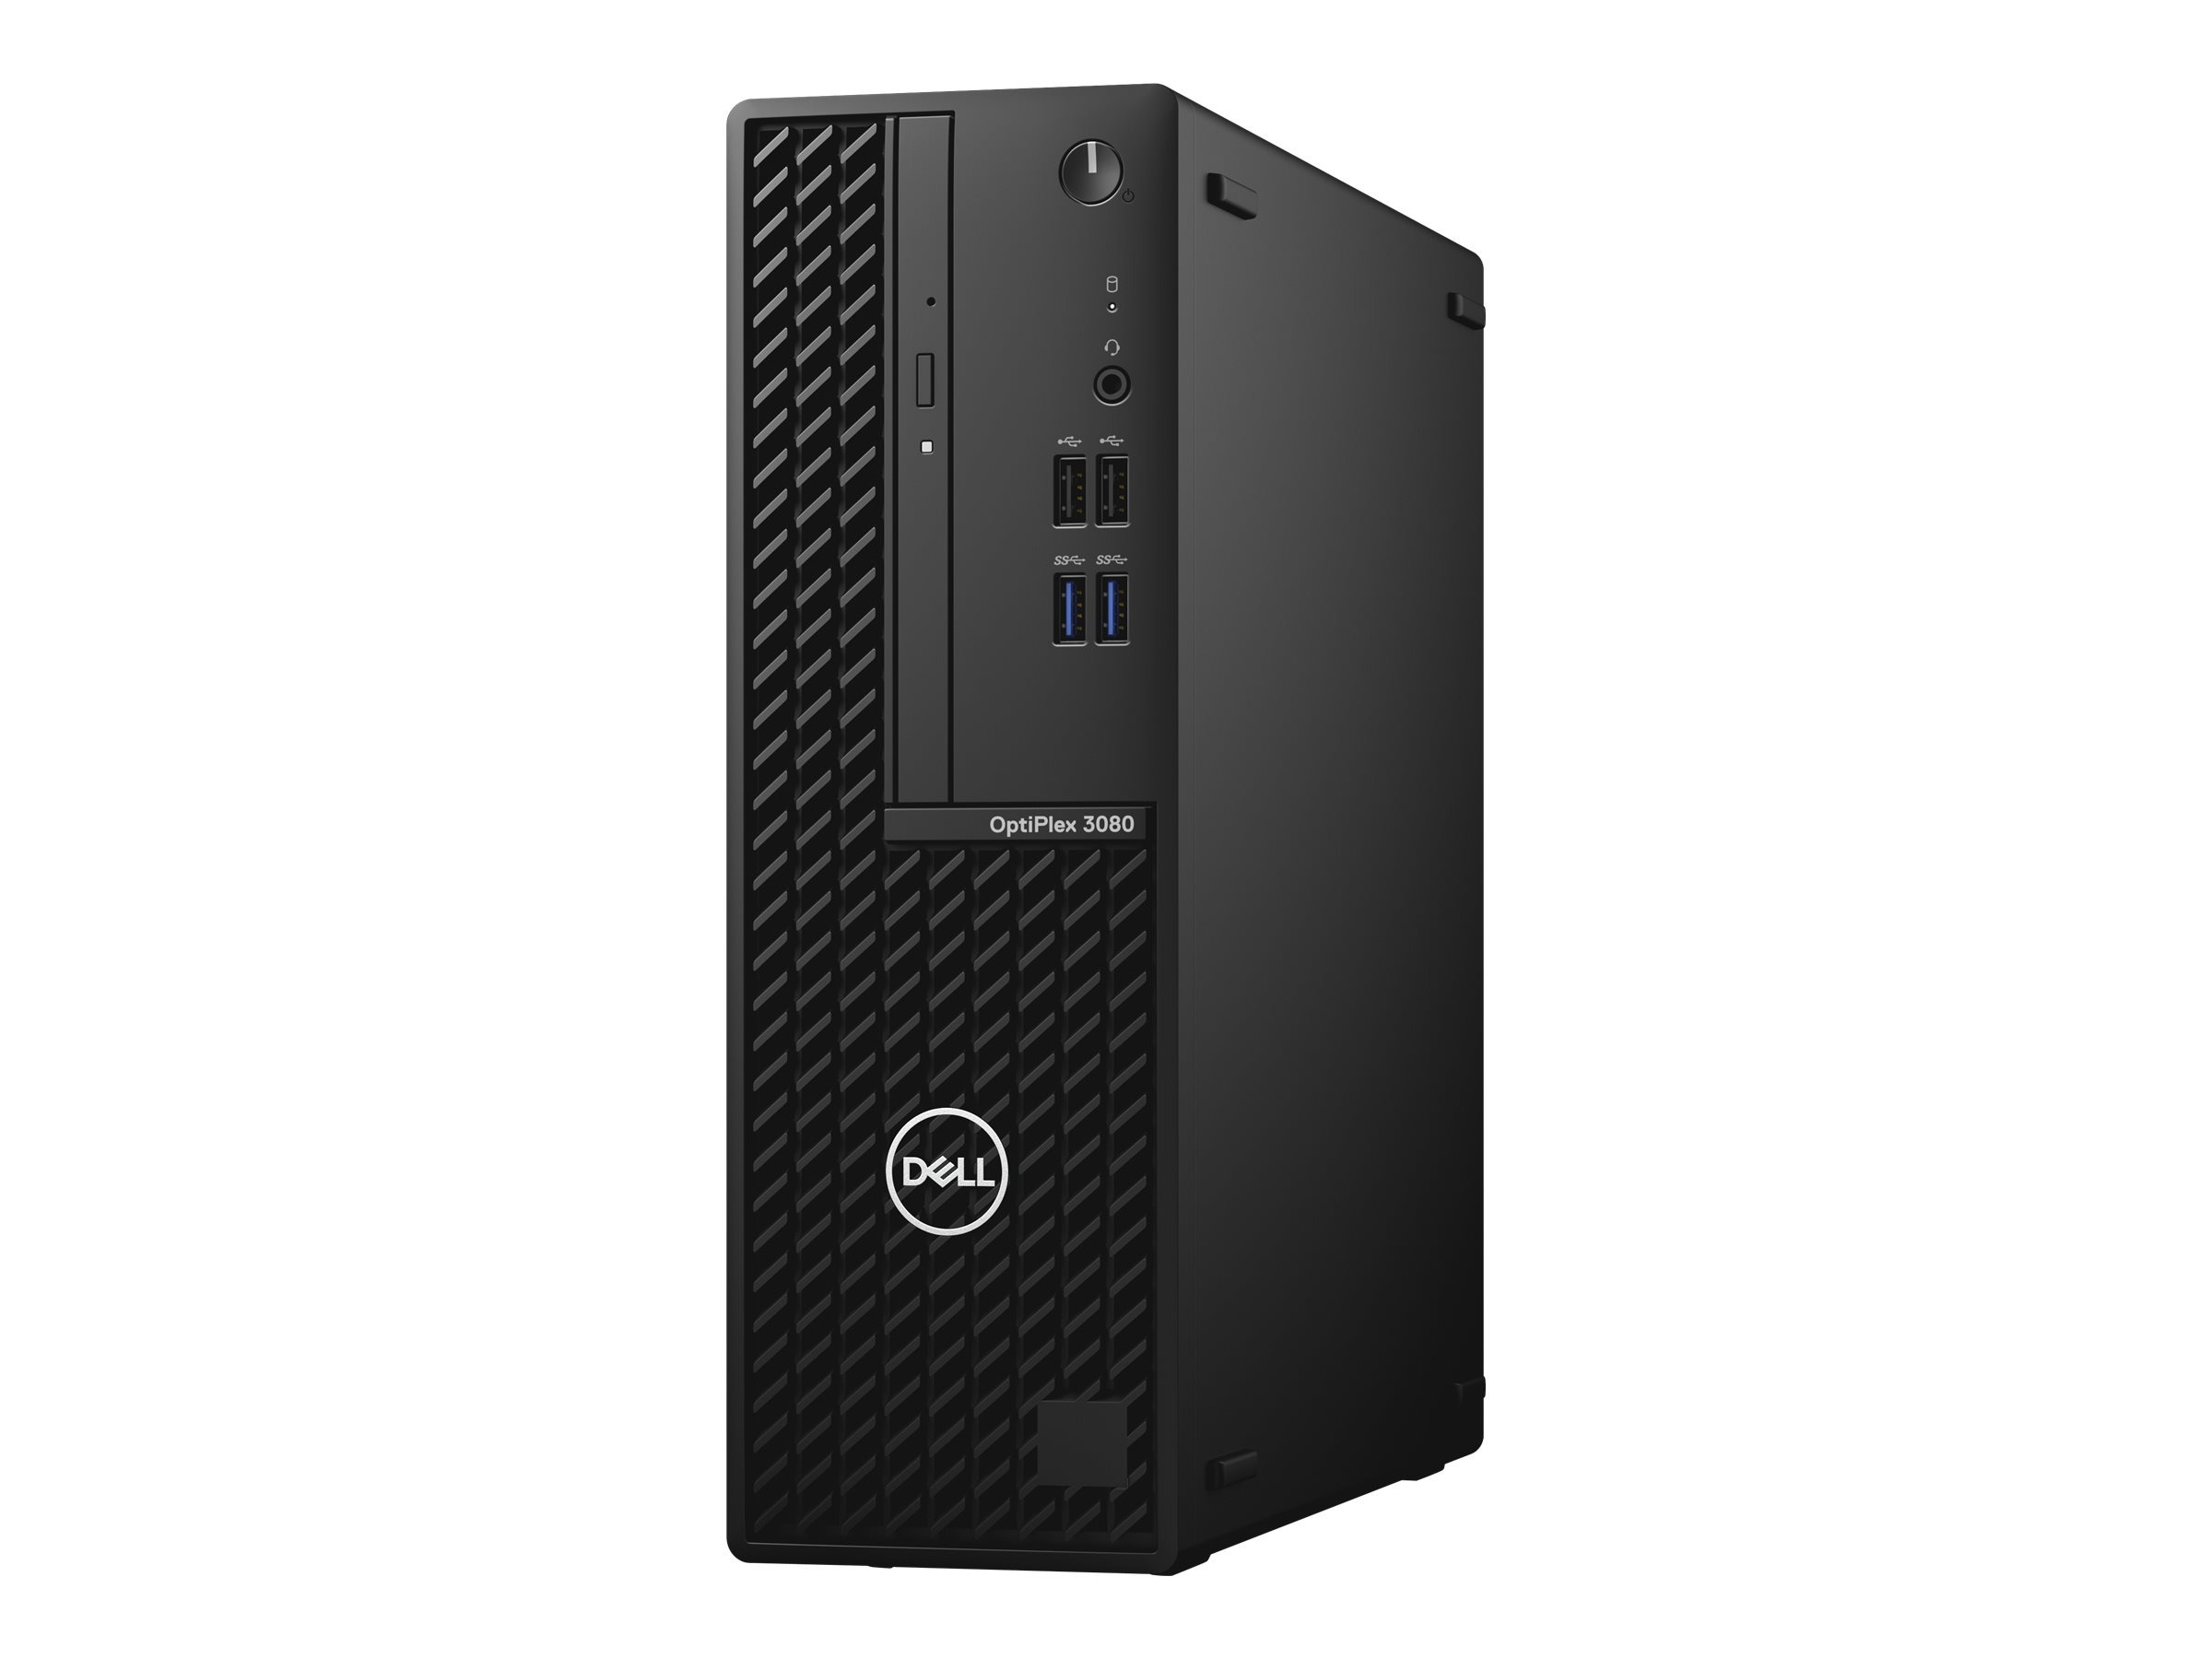 Dell OptiPlex 3080 - SFF - Core i5 10500 / 3.1 GHz - RAM 8 GB - SSD 256 GB - DVD-Writer - UHD Graphics 630 - GigE - Win 10 Pro 64-Bit - Monitor: keiner - BTS - mit 1 Year Basic Onsite (CH, AT, DE - 3 Years)